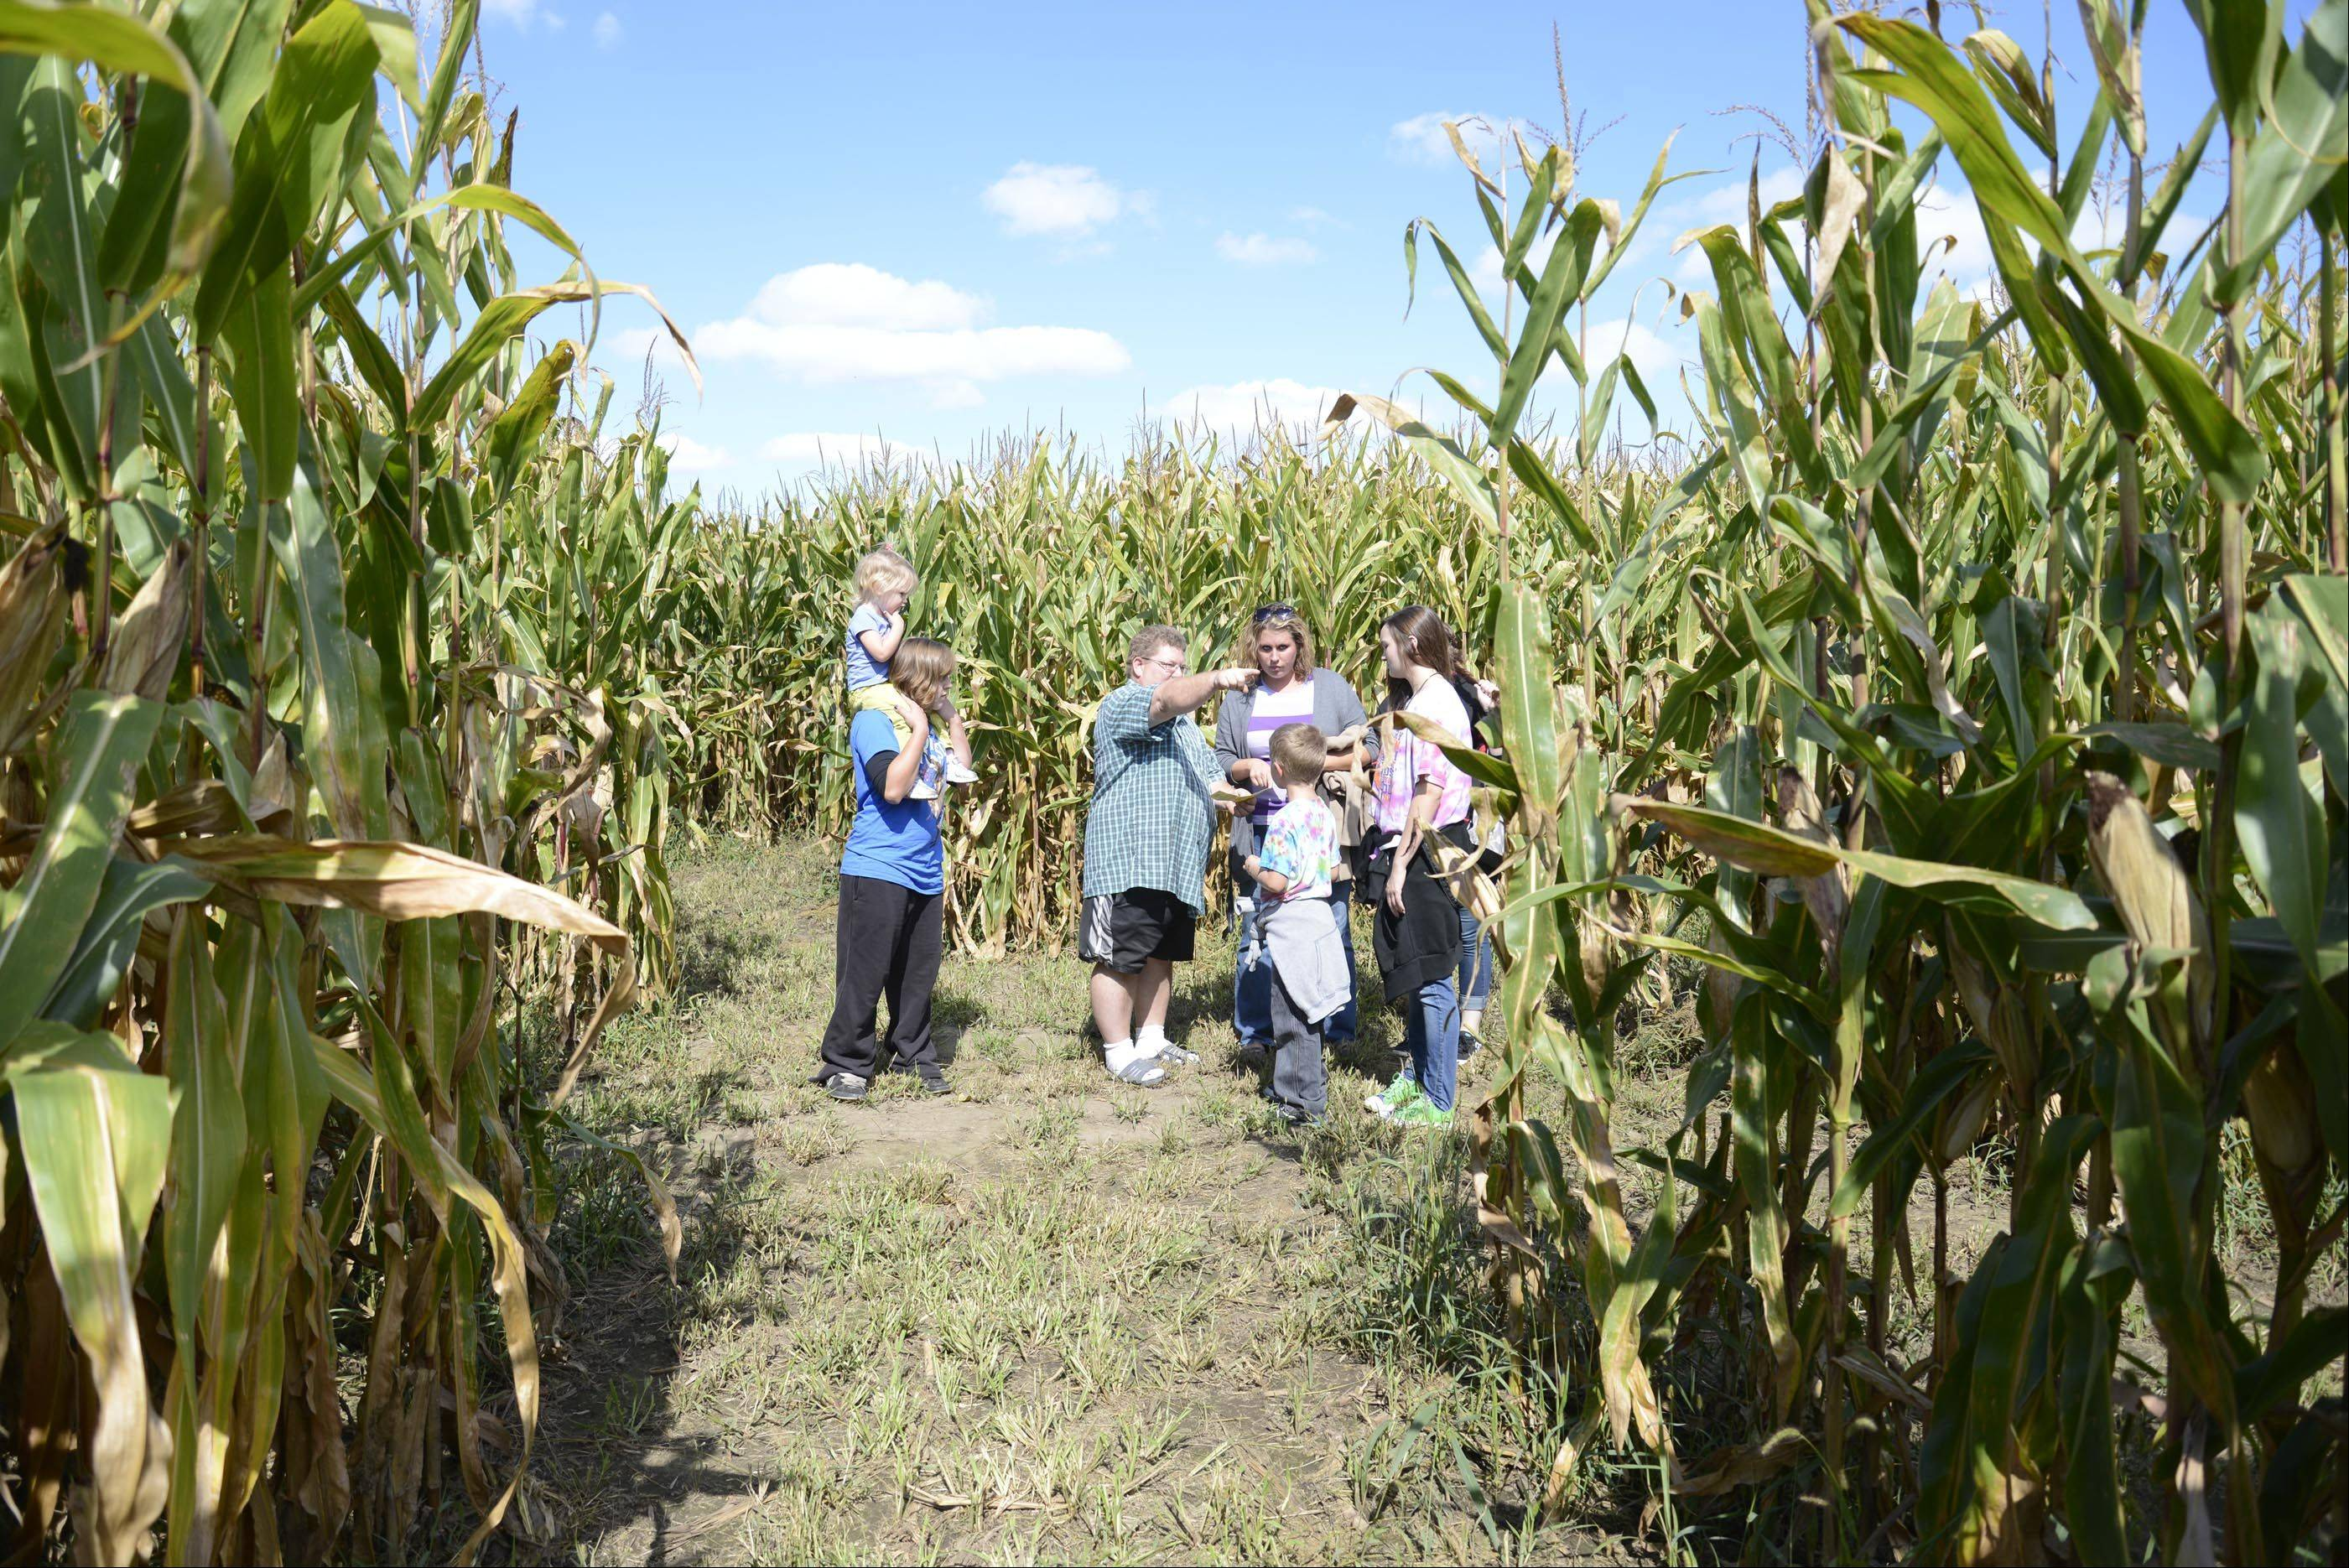 Owner Ben Norton gives directions to Jessica, Brody, Kelsey and Lexi Hanson, of St. Charles, and Hayle and Katy Pillsburg, of Maple Park, at the Norton's Produce & Garden Center corn maze.